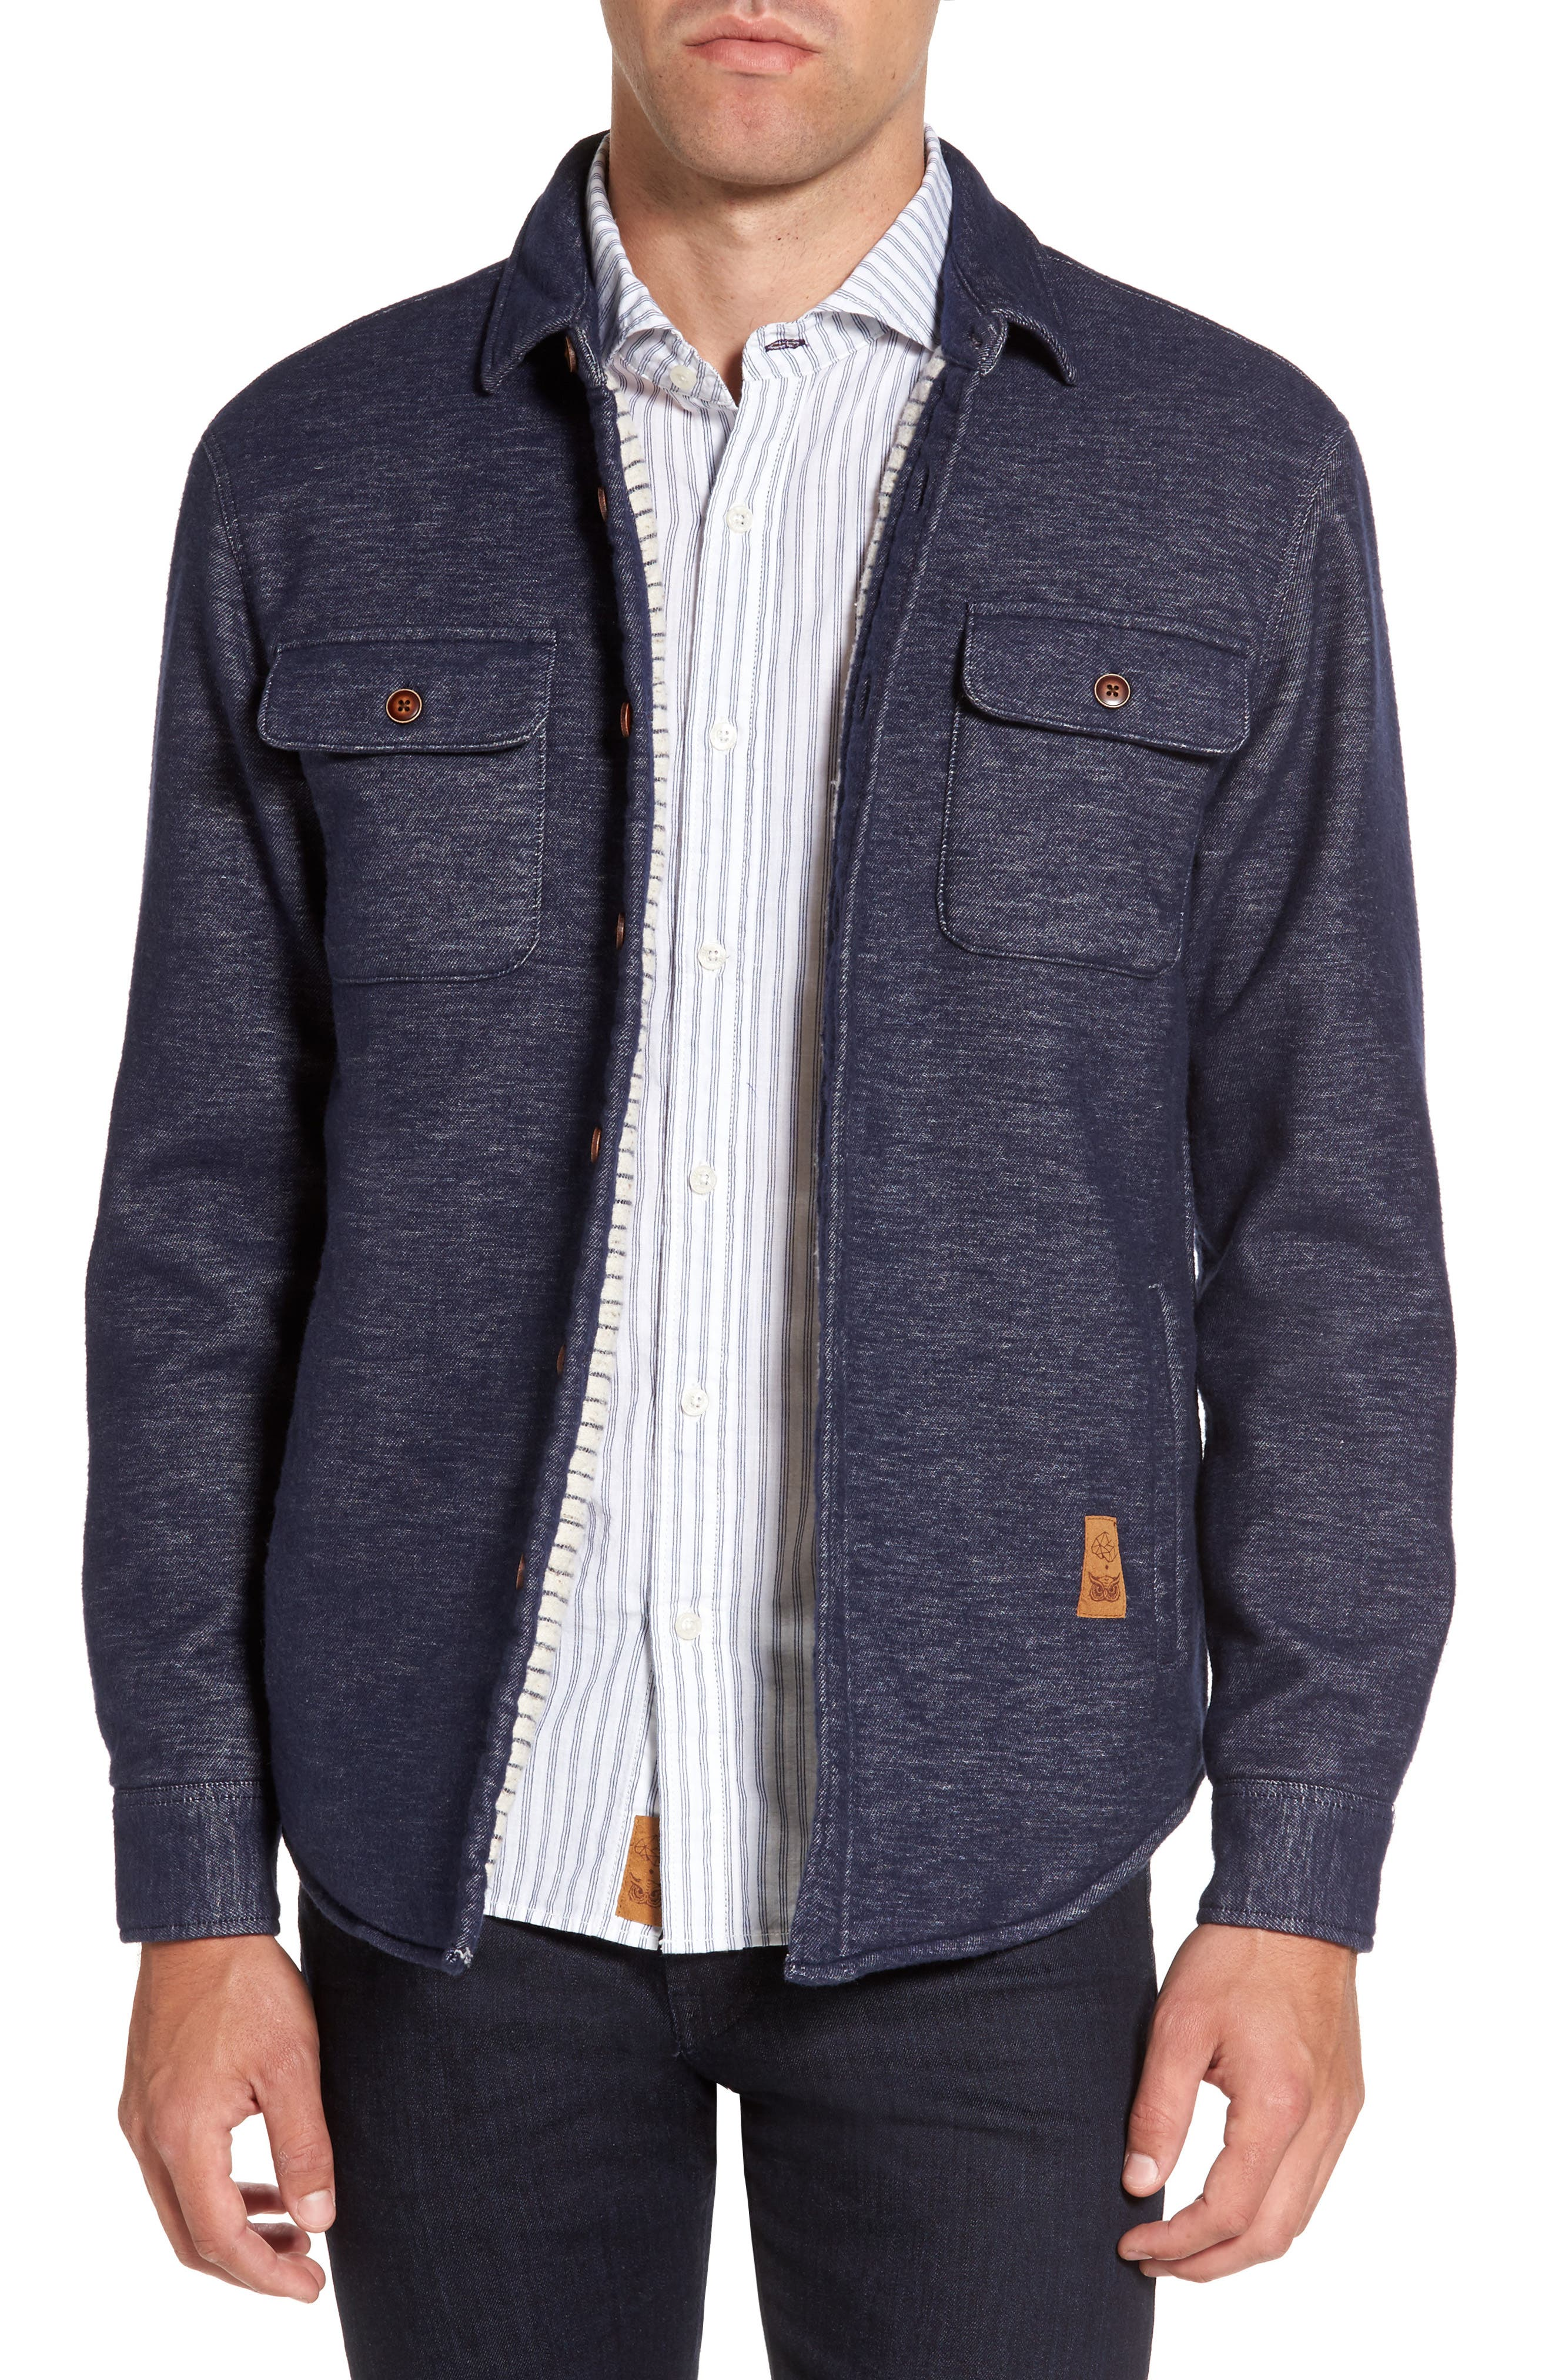 NIFTY GENIUS CPO Shirt Jacket